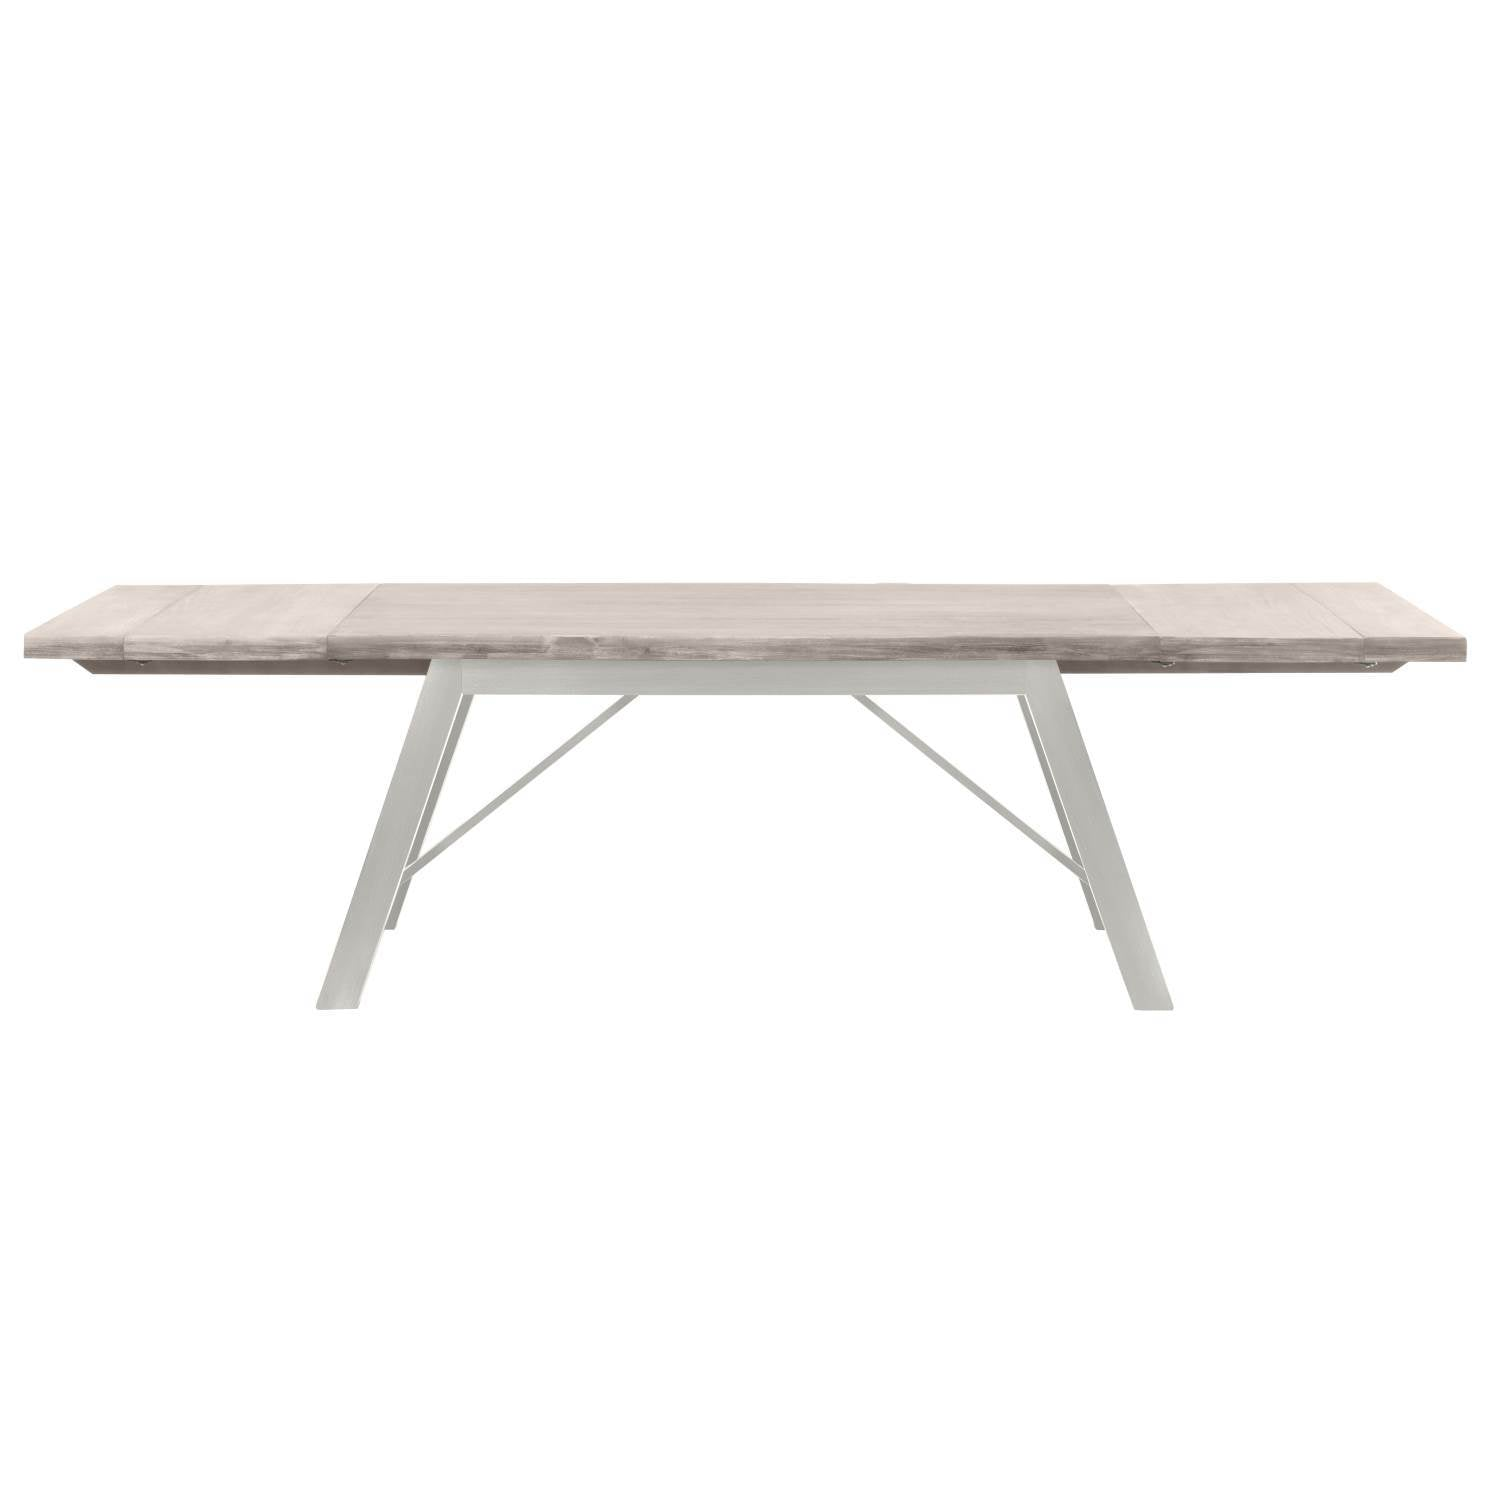 Grayson Extension Dining Table in Natural Gray